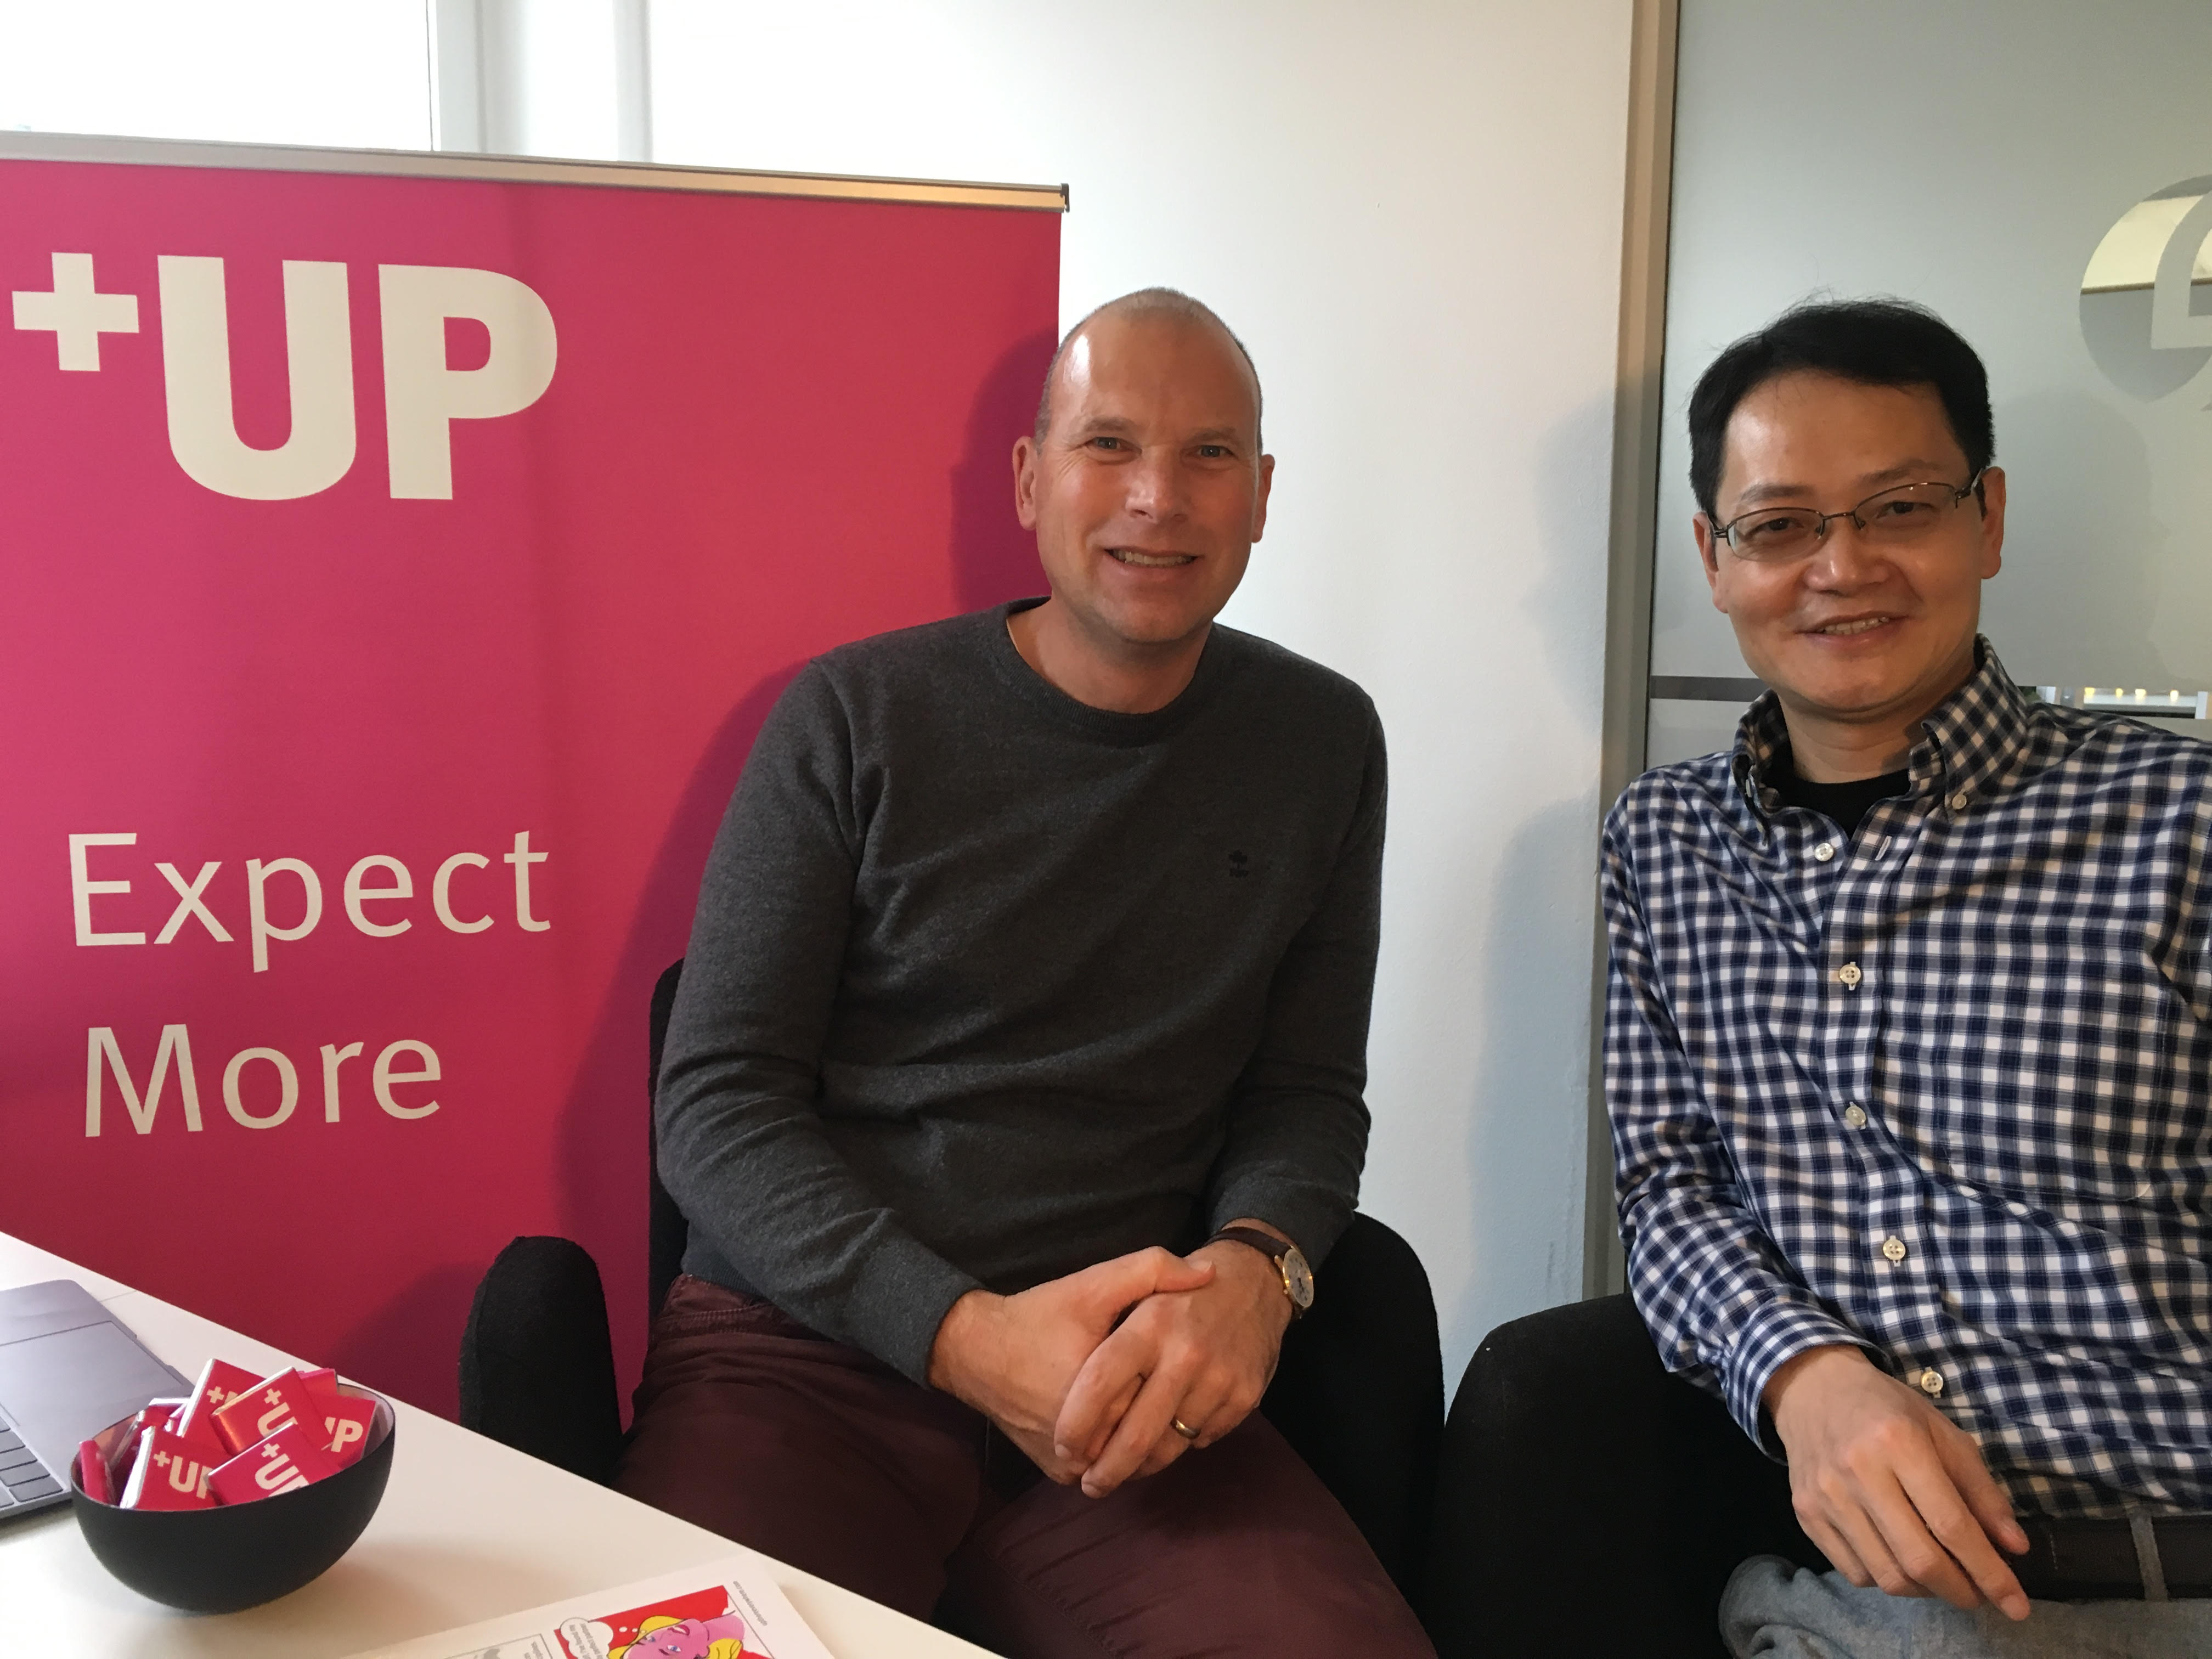 UP members lawrence masle and michael zhou